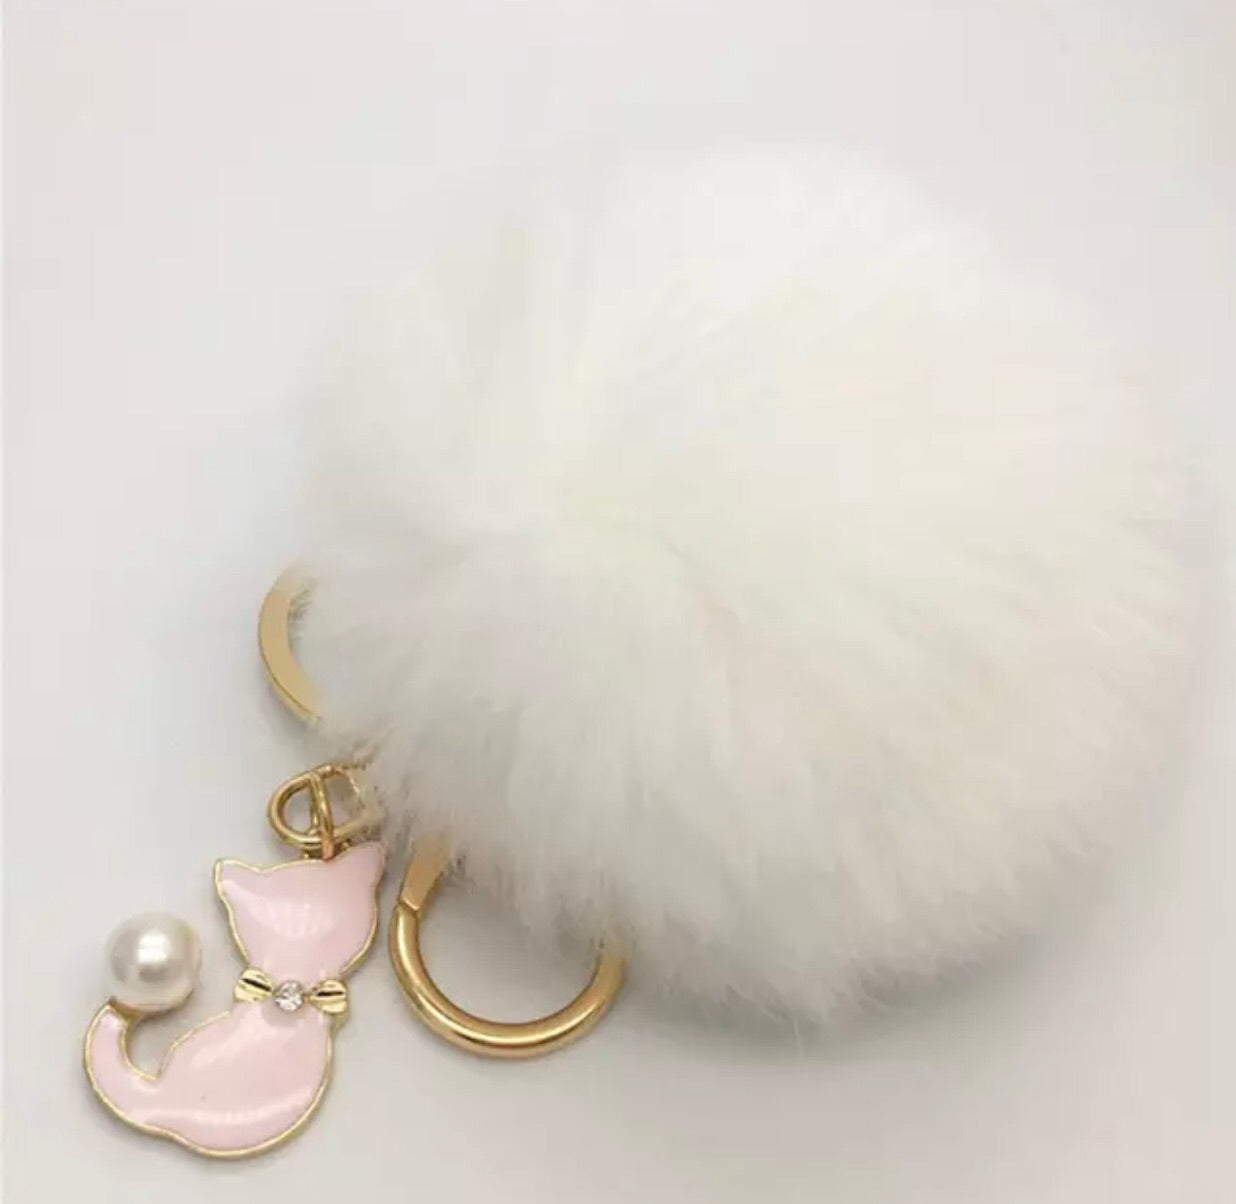 Kitty pom pom bag charm keychain